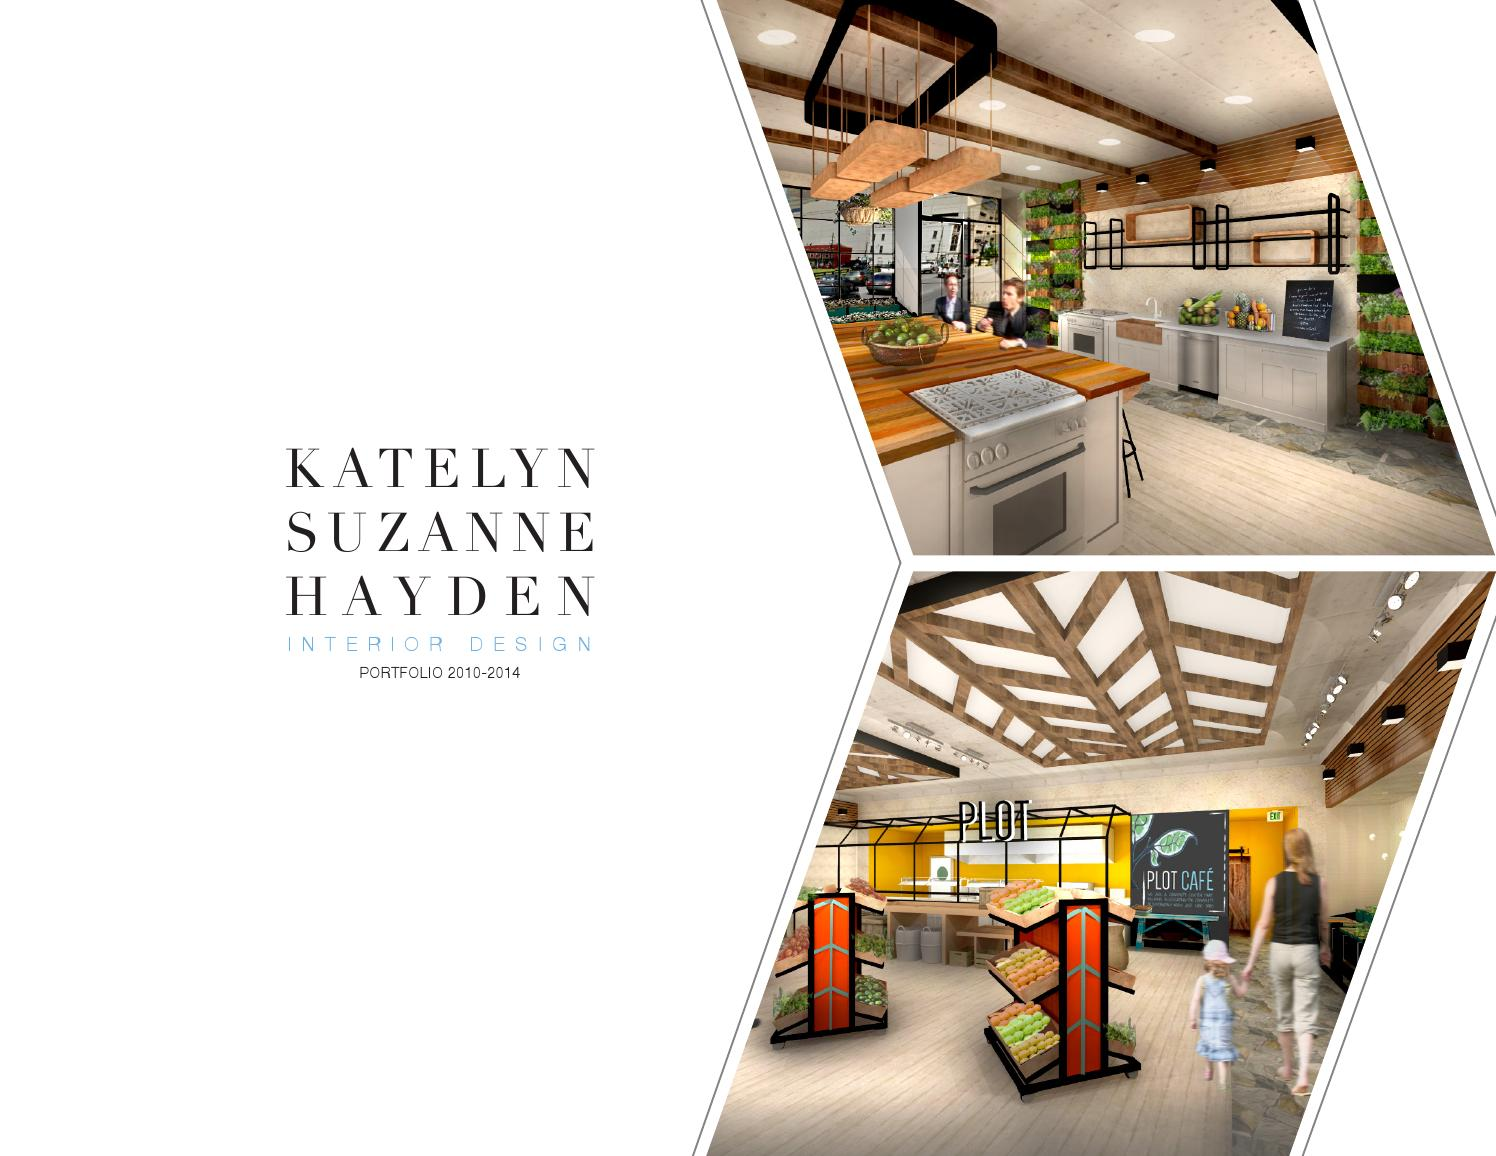 Interior design portfolio by katelyn hayden issuu - Interior design portfolio samples ...